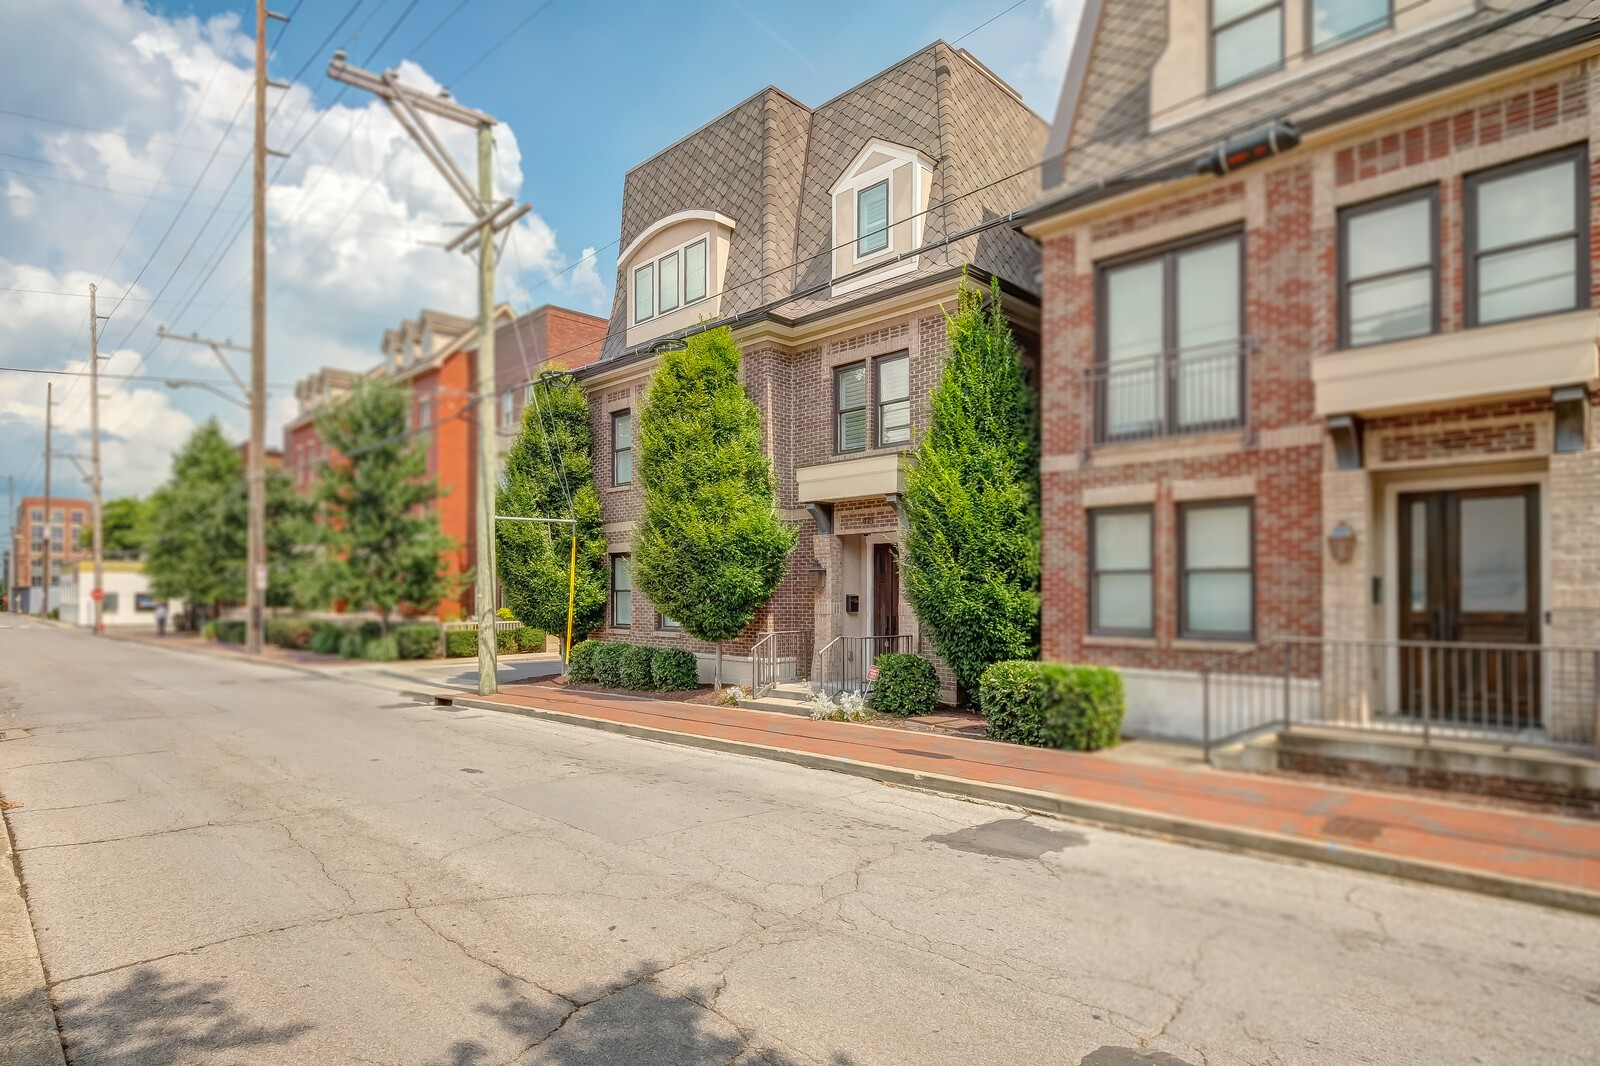 Luxury Townhome in heart of Germantown. Walk to sounds stadium, and downtown. 4 beds, 3.1 baths, concrete floors on the first level, hardwood floors throughout rest of home. high end finishes in every room. 360 views of the city from the rooftop patio, with full outdoor kitchen. Steam showers in master bath, custom built walk-in closet. Custom Hammered sinks in multiple rooms.